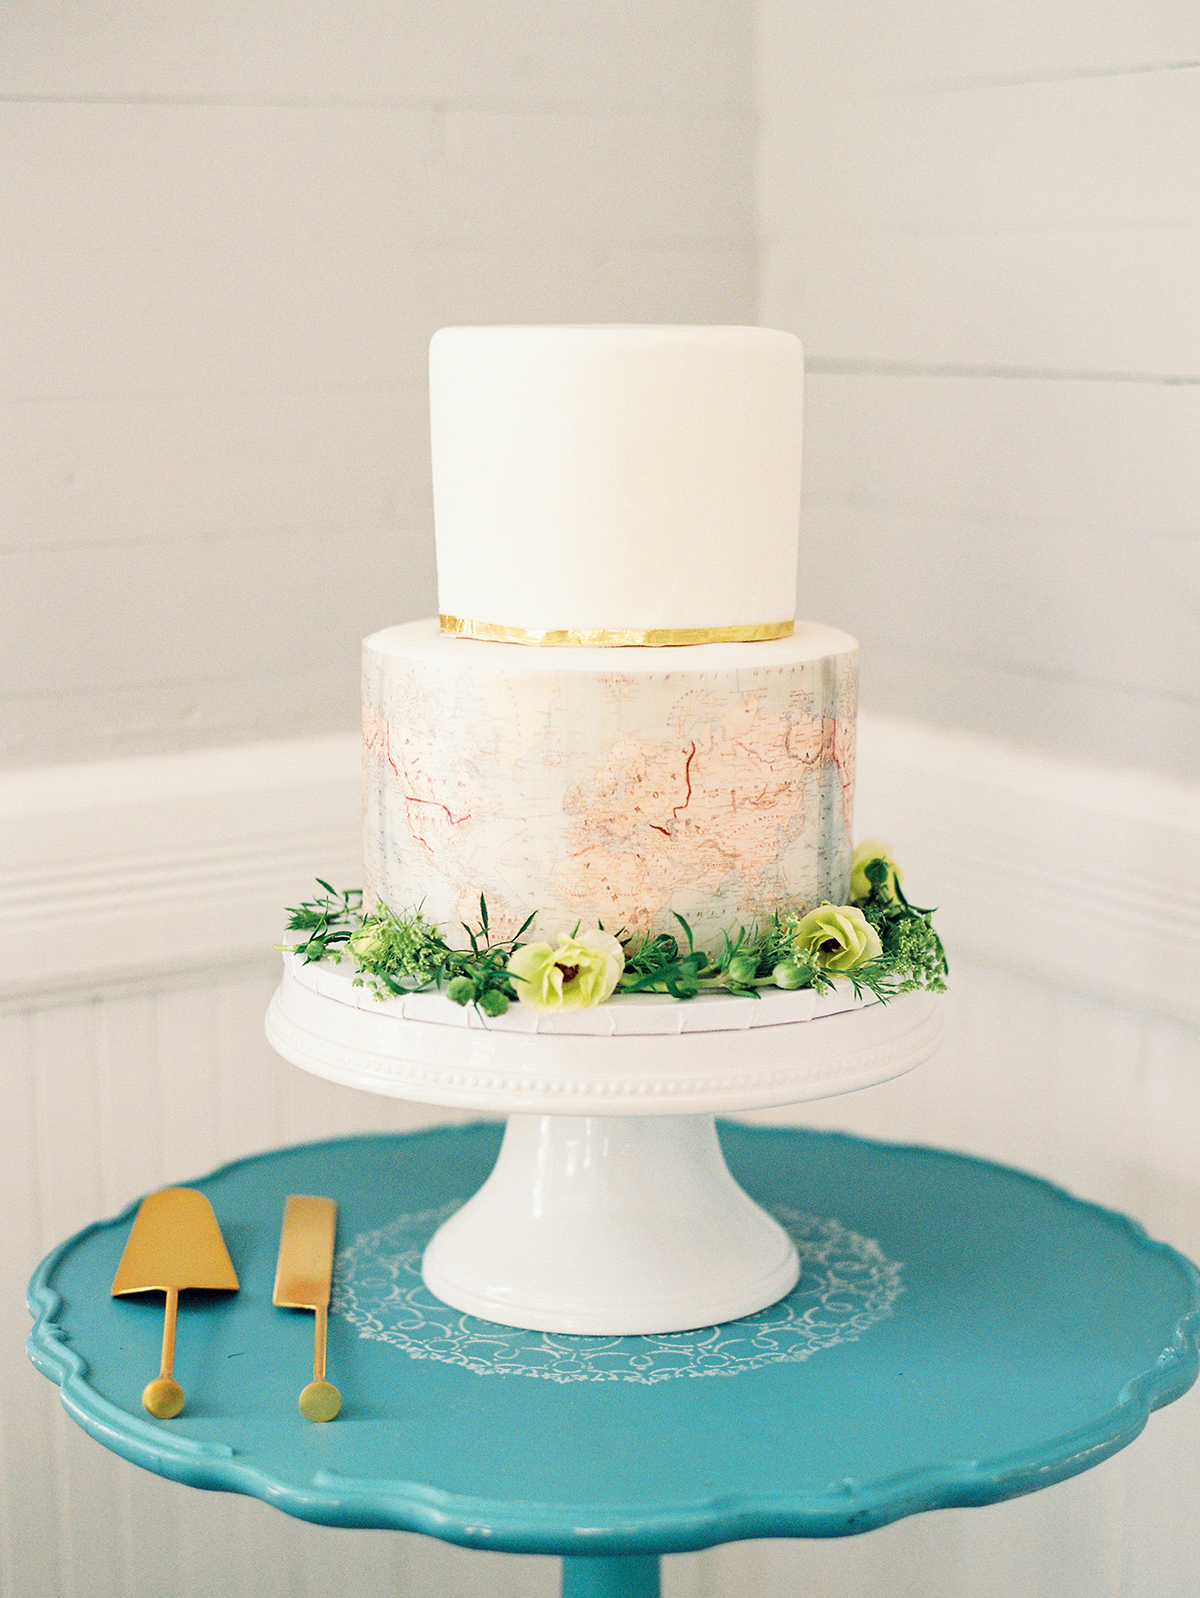 wedding cake with map design on the bottom tier